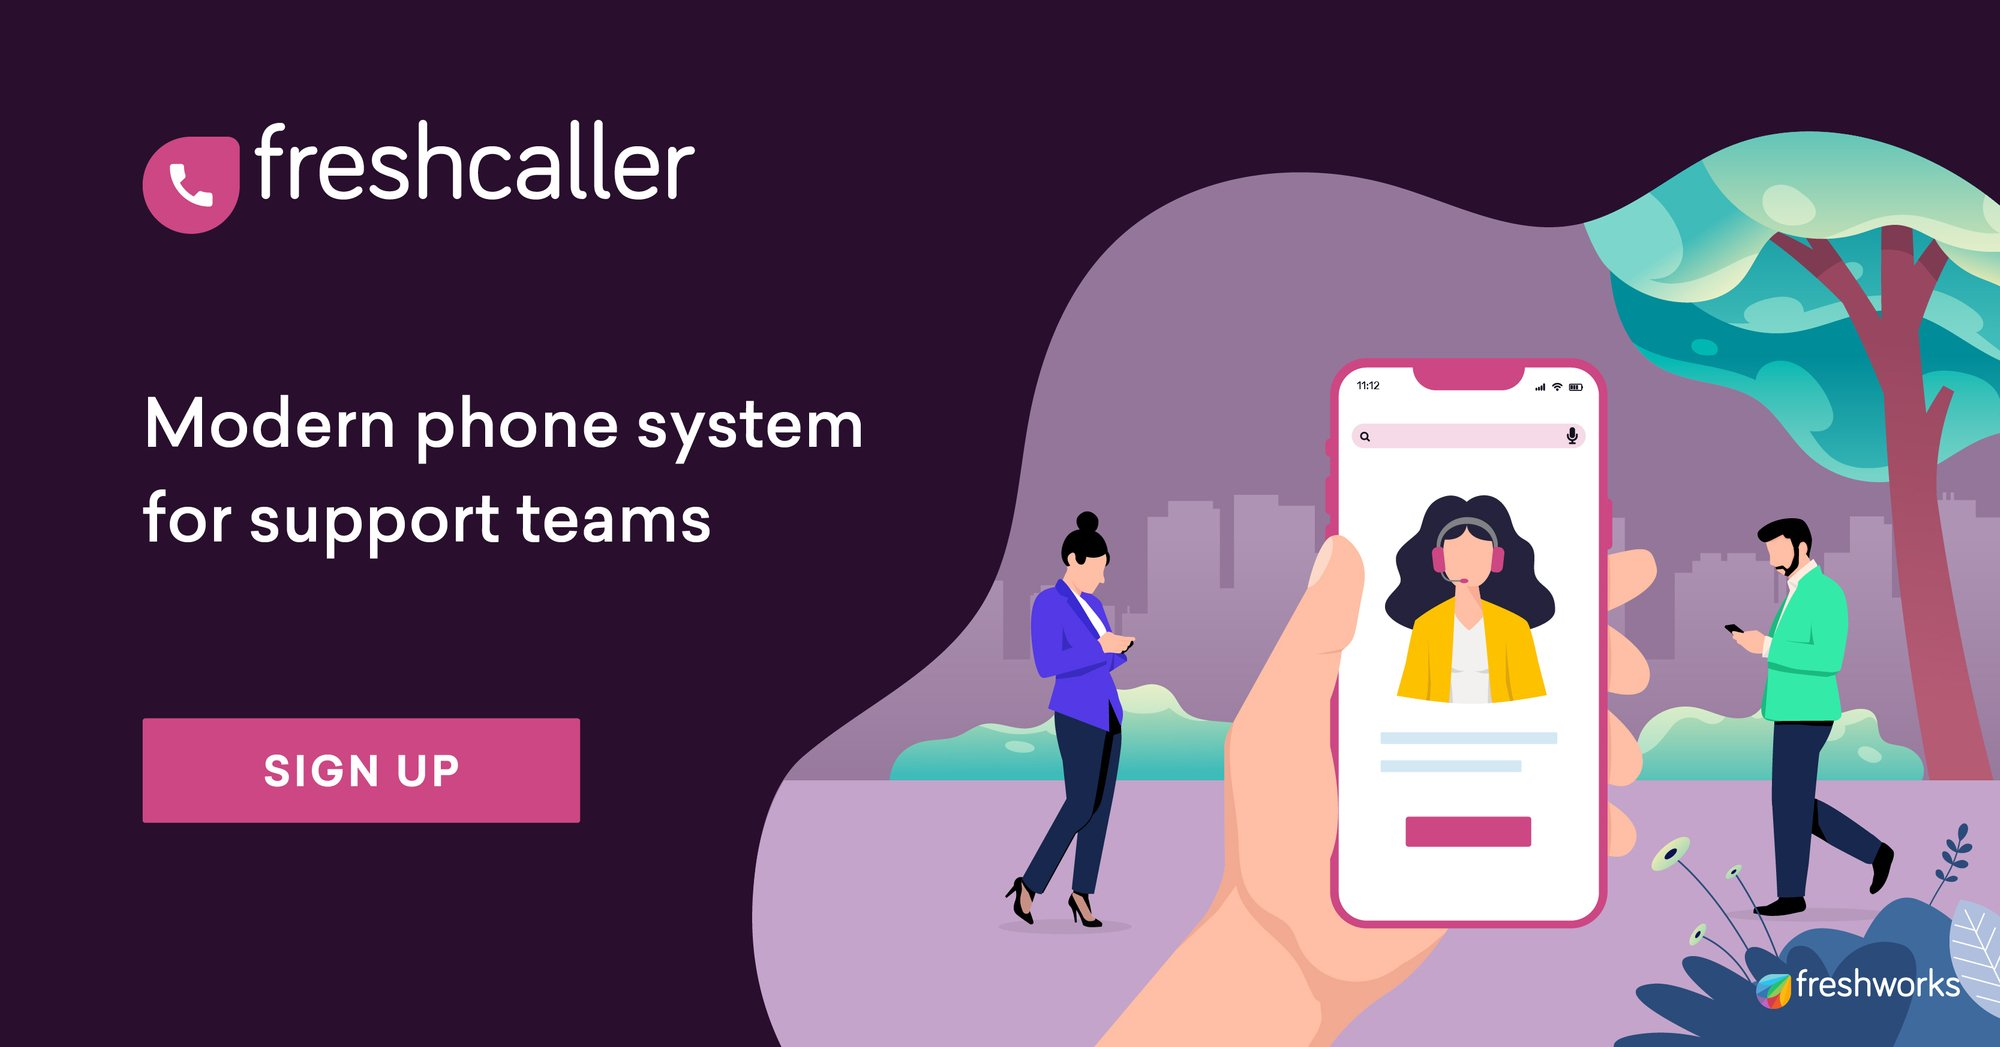 Freshcaller by Freshworks is a truly modern and reliable phone system that is trusted by over 7000+ customers worldwide.